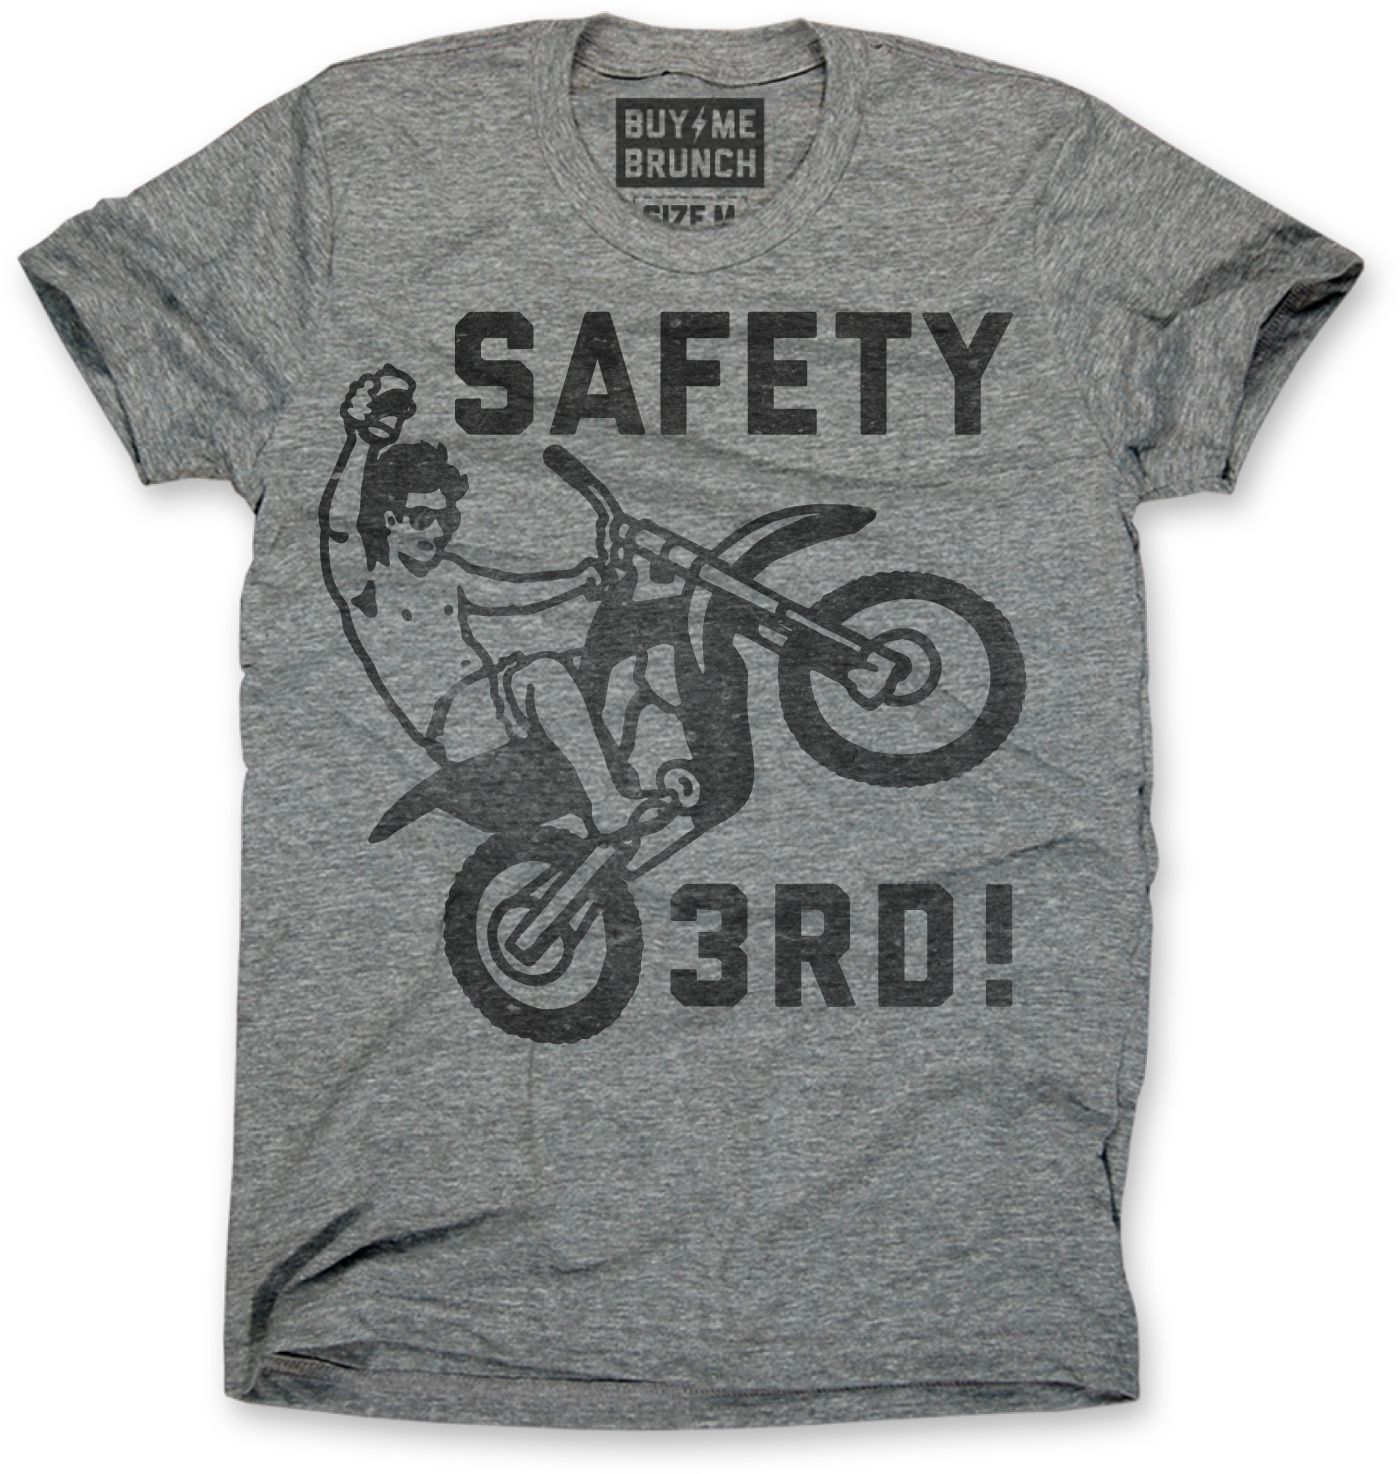 7b743f929 Safety Third triblend T-shirt. Softest pedal-to-the metal tee on the  market. Dirtbikes, motorcycles, bad decisions not included. Ultra soft  heather grey ...